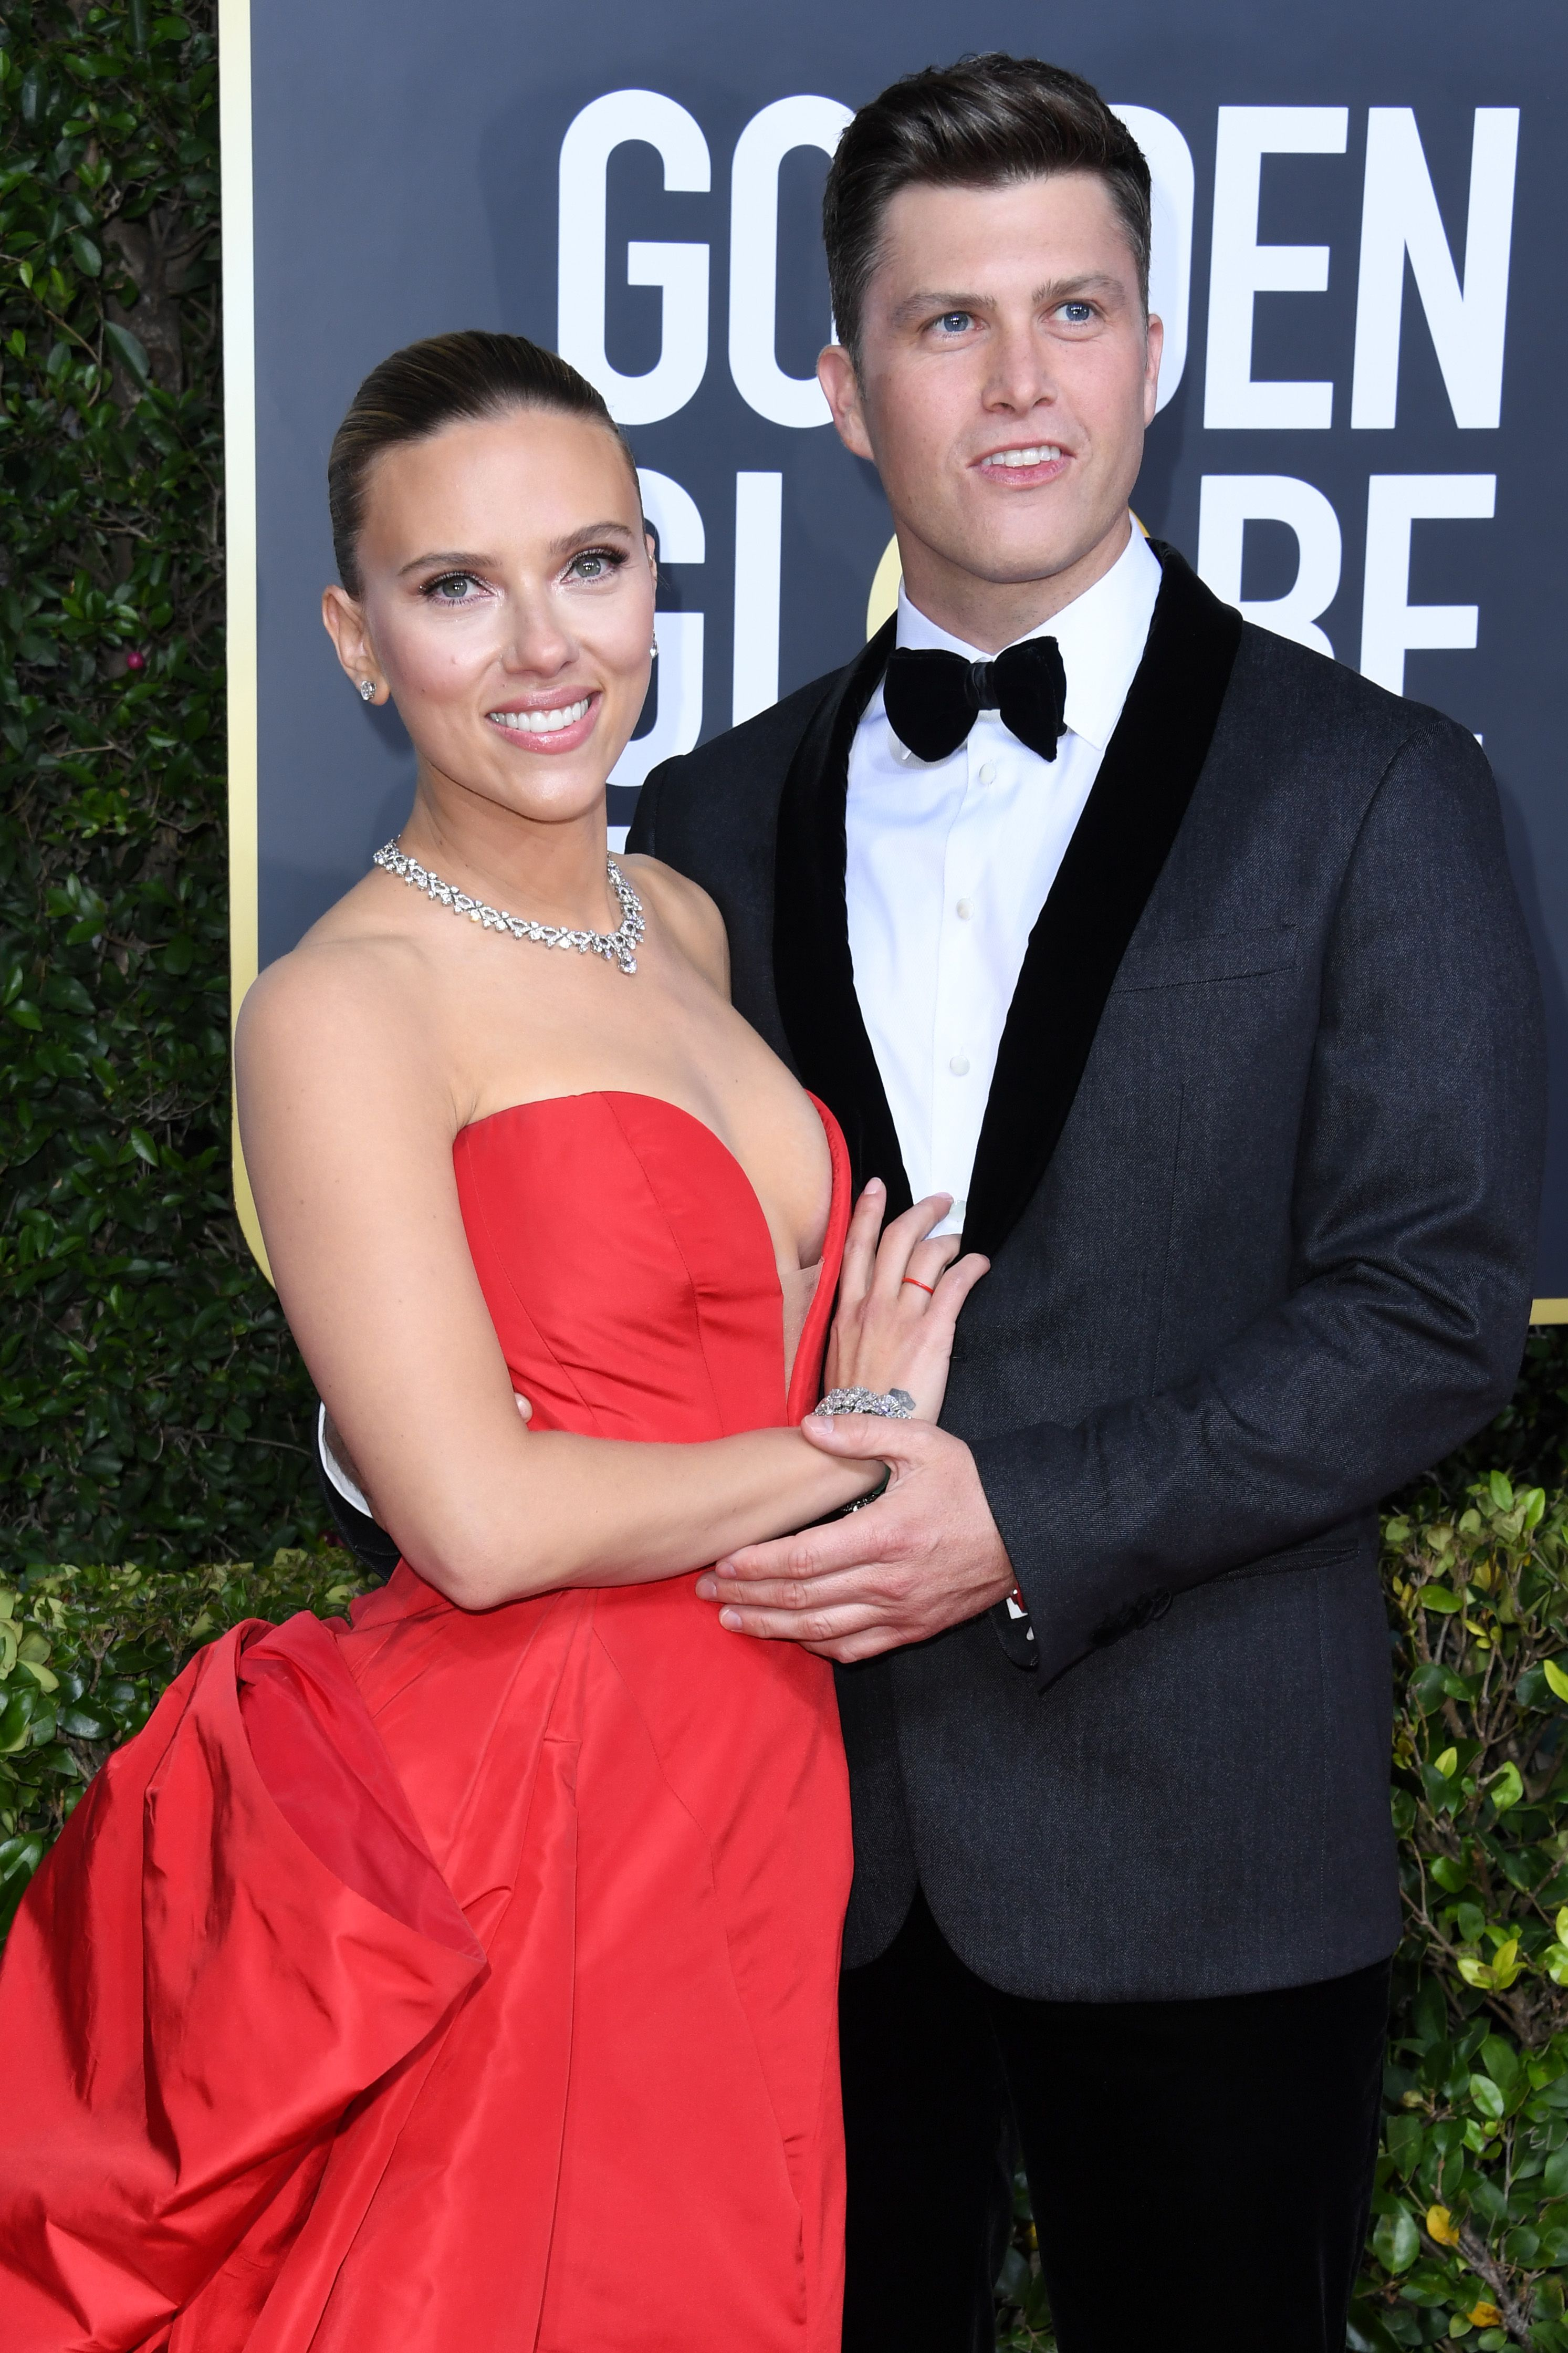 Scarlett Johansson and Colin Jost Have a Moment on the Golden Globes Red Carpet